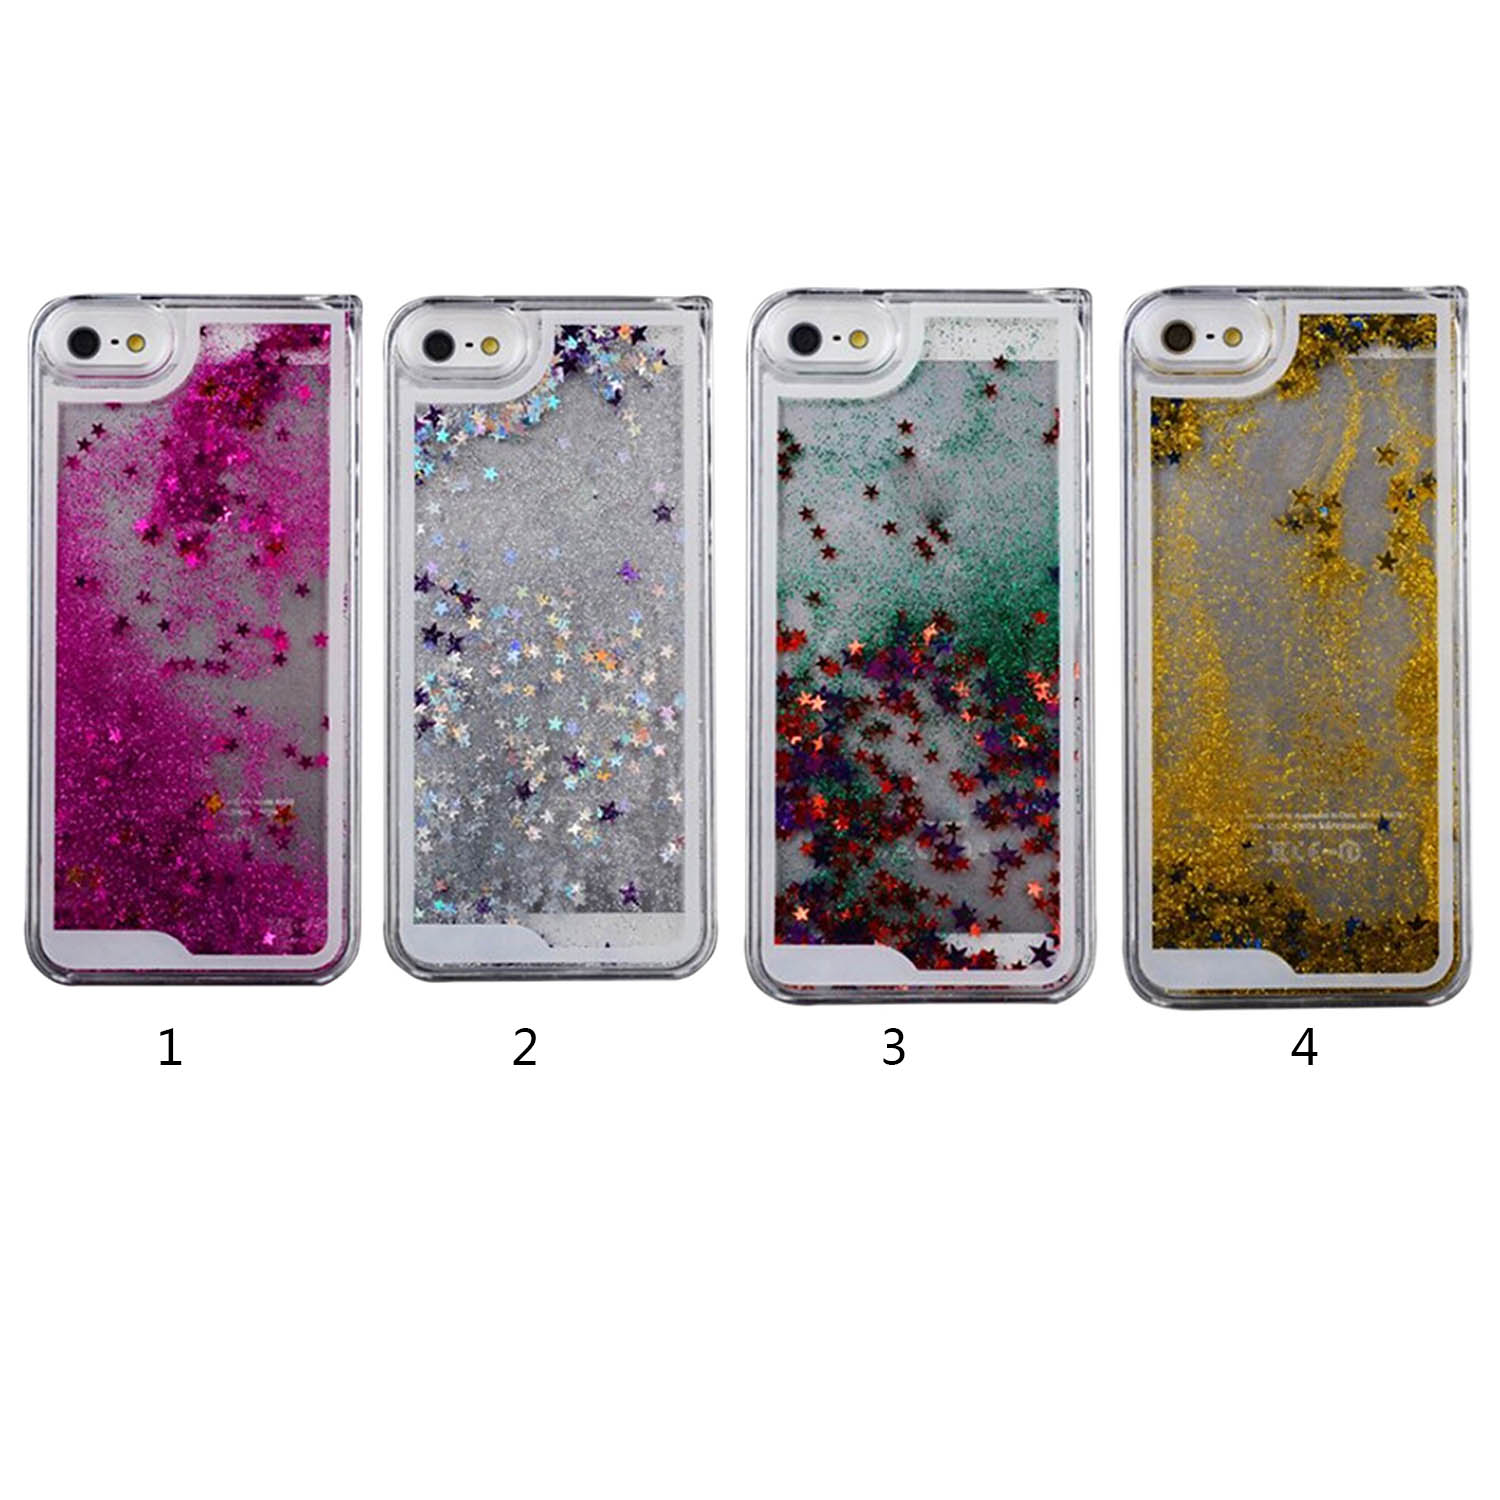 New Star Cell Phone Cases for celular coque iphone 5 5S